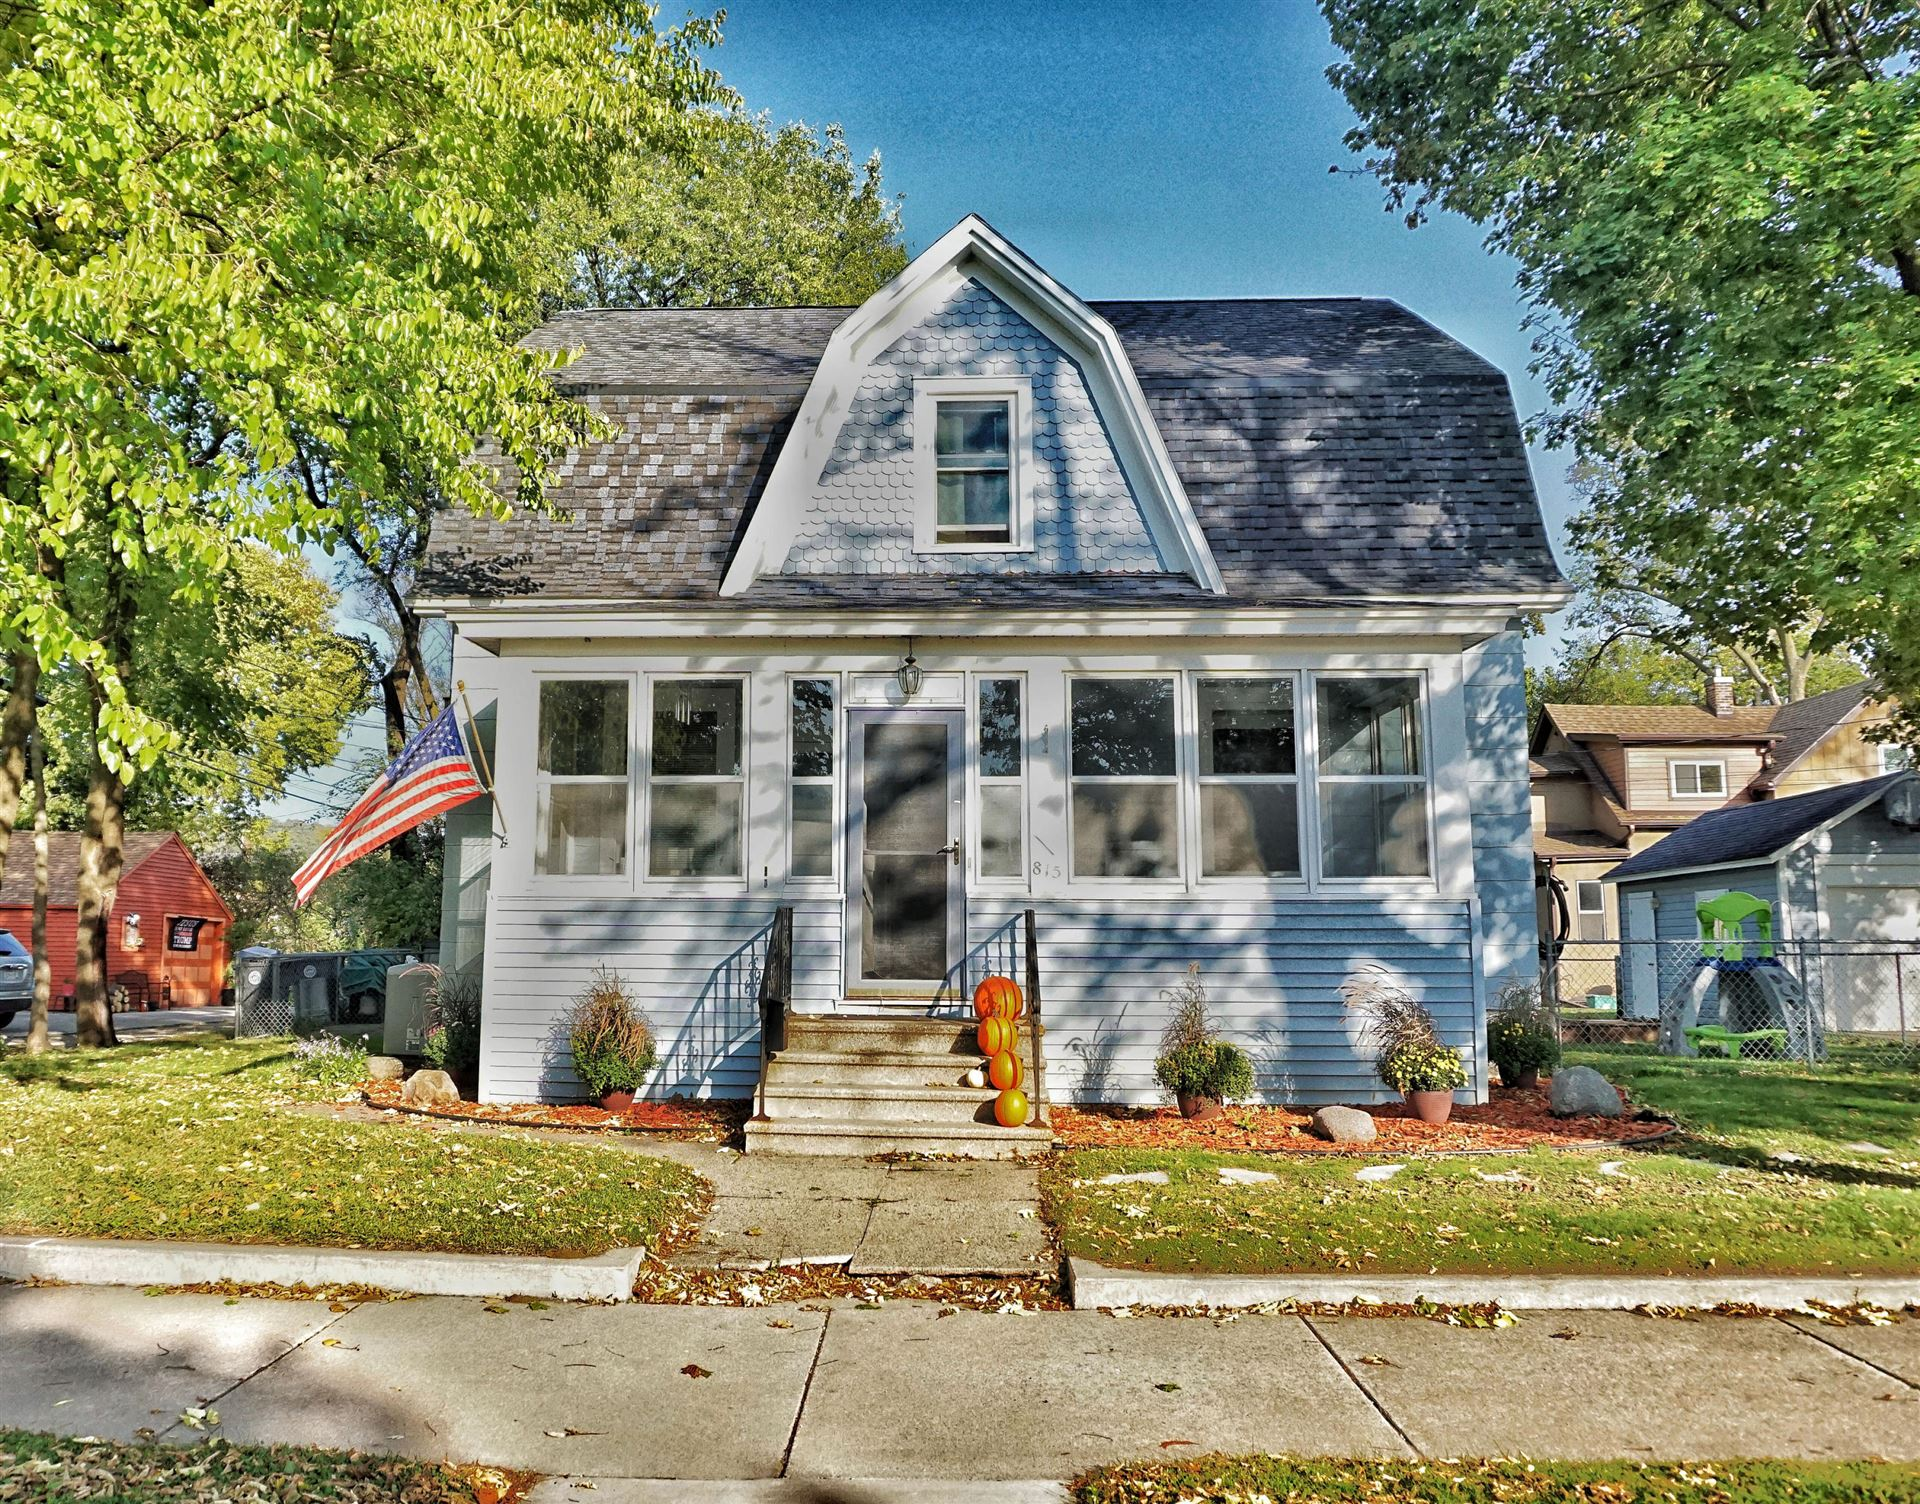 815 17th St S, La Crosse, WI 54601 - MLS#: 1713290